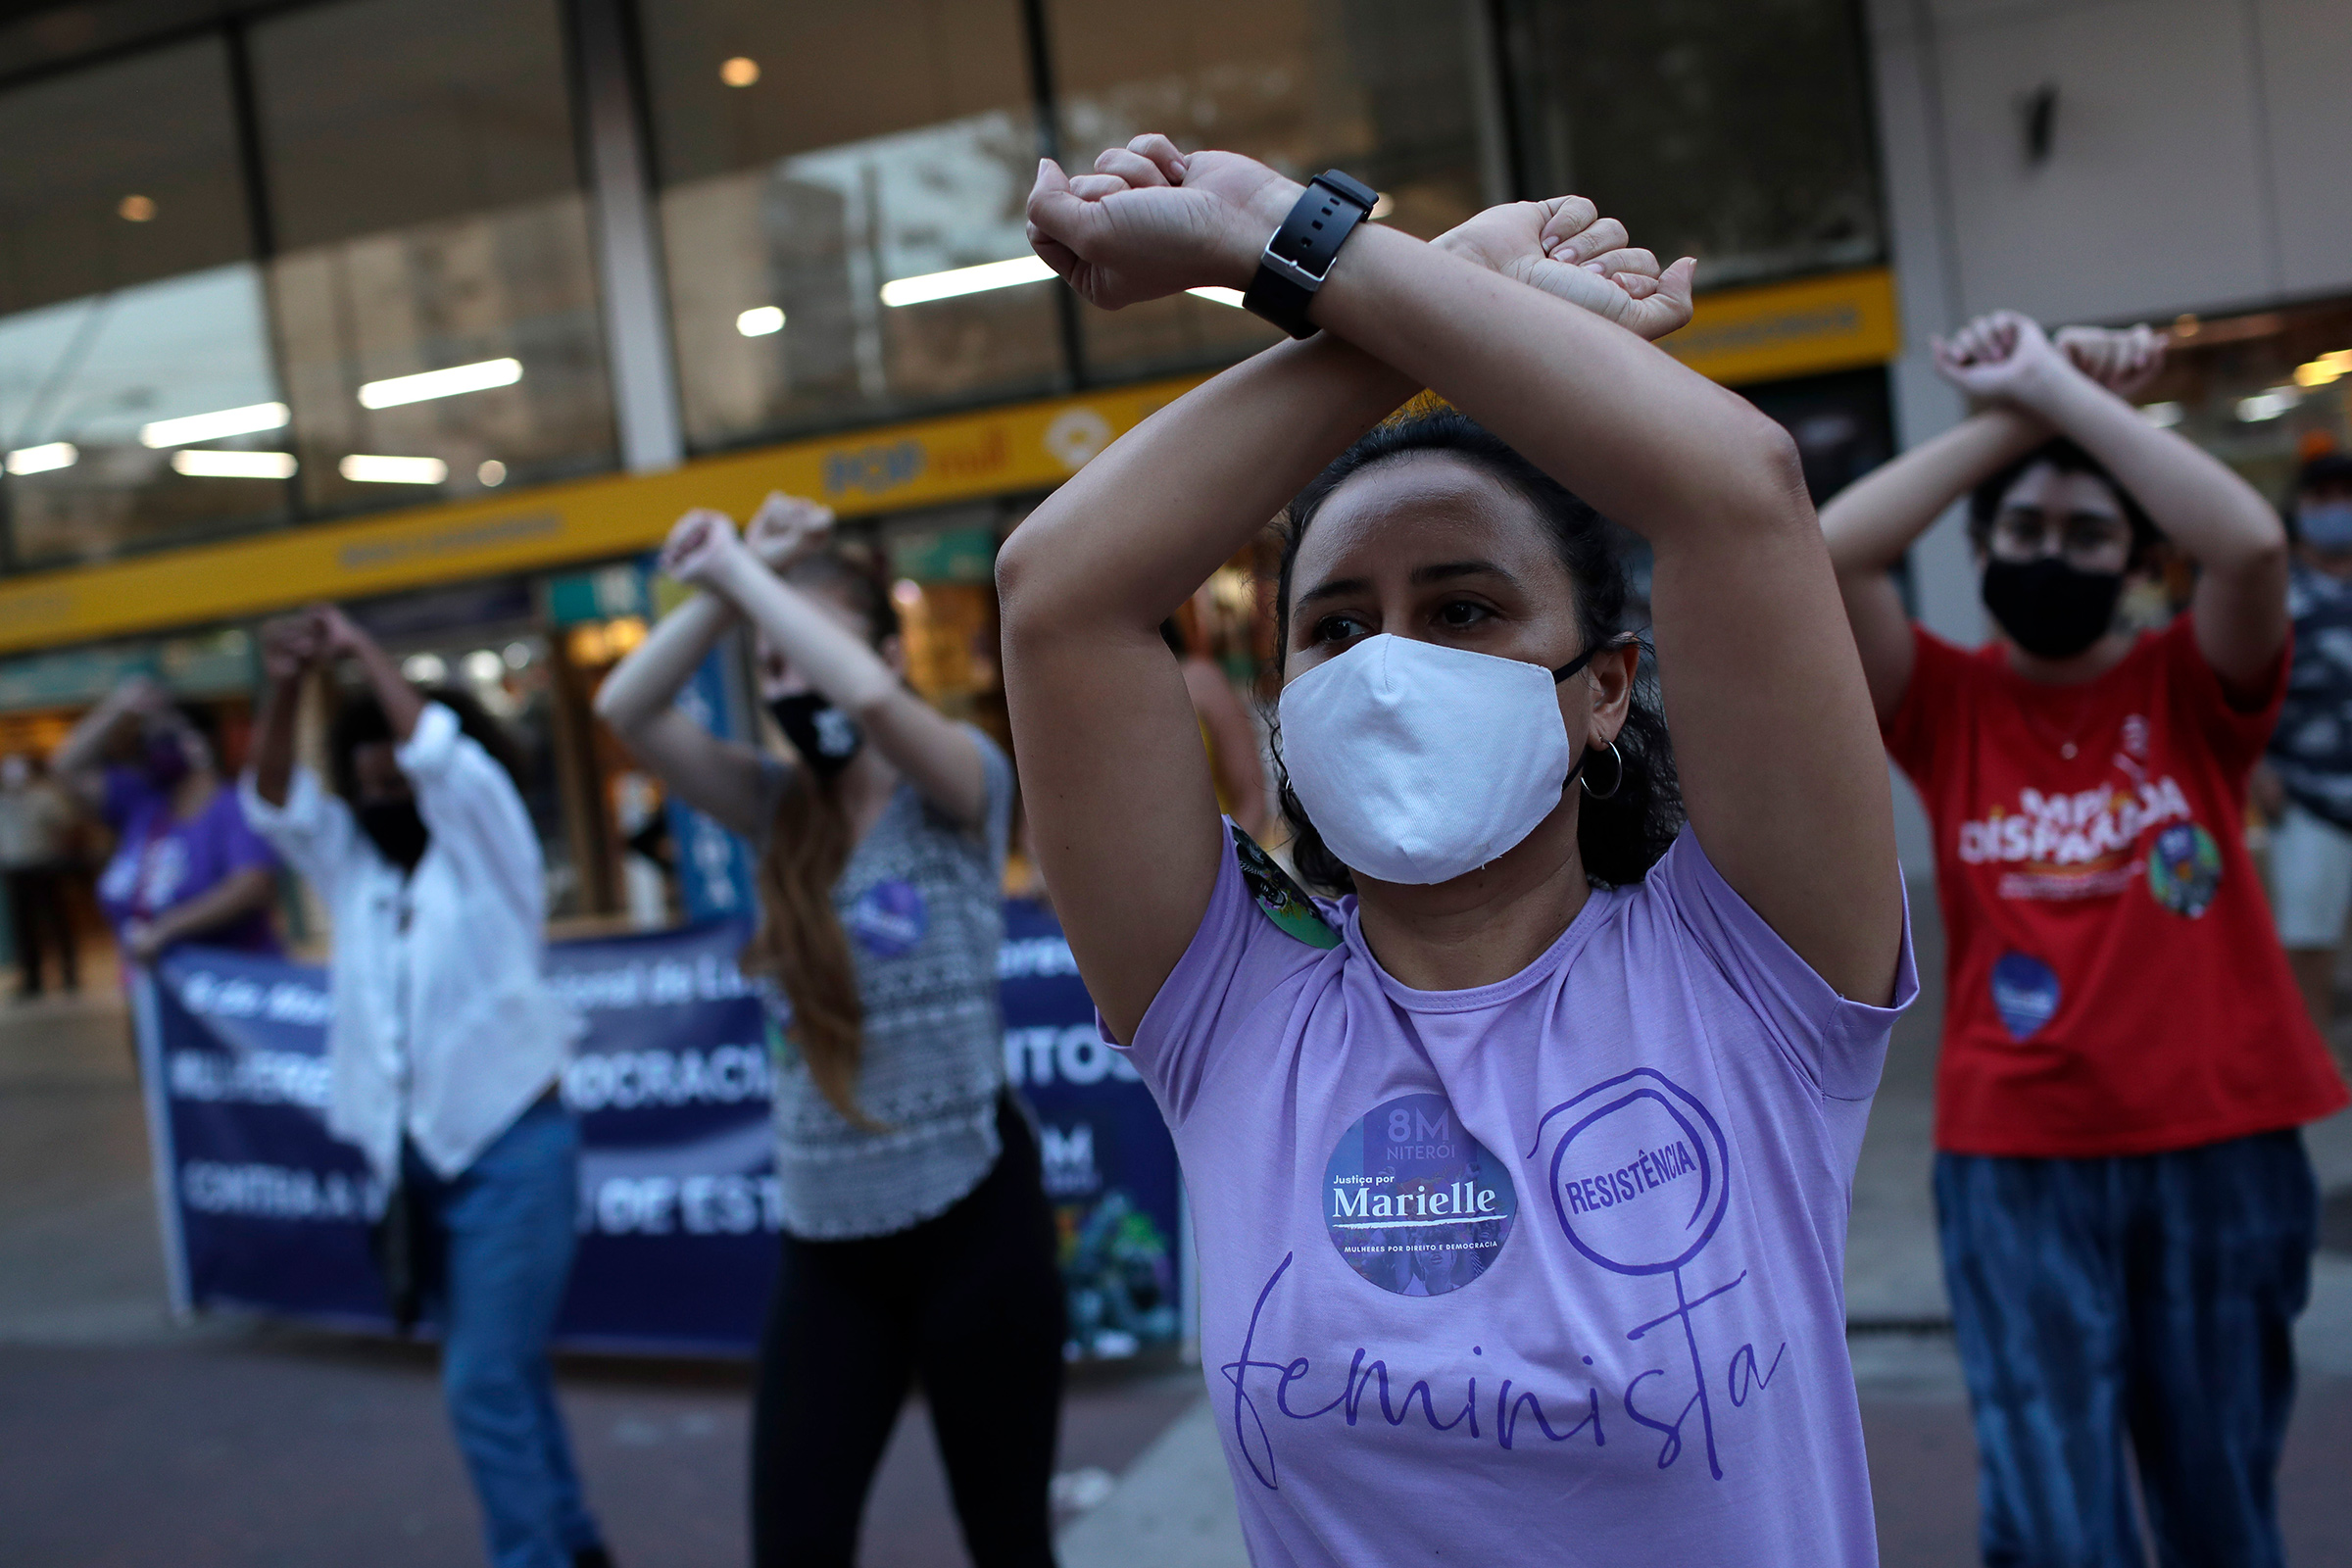 Women participate in  The Rapist Is You,  a feminist performance piece originating in Chile, during a demonstration against rape, gender-based violence, and domestic abuse in Niteroi, Brazil, Sept.2, 2020.